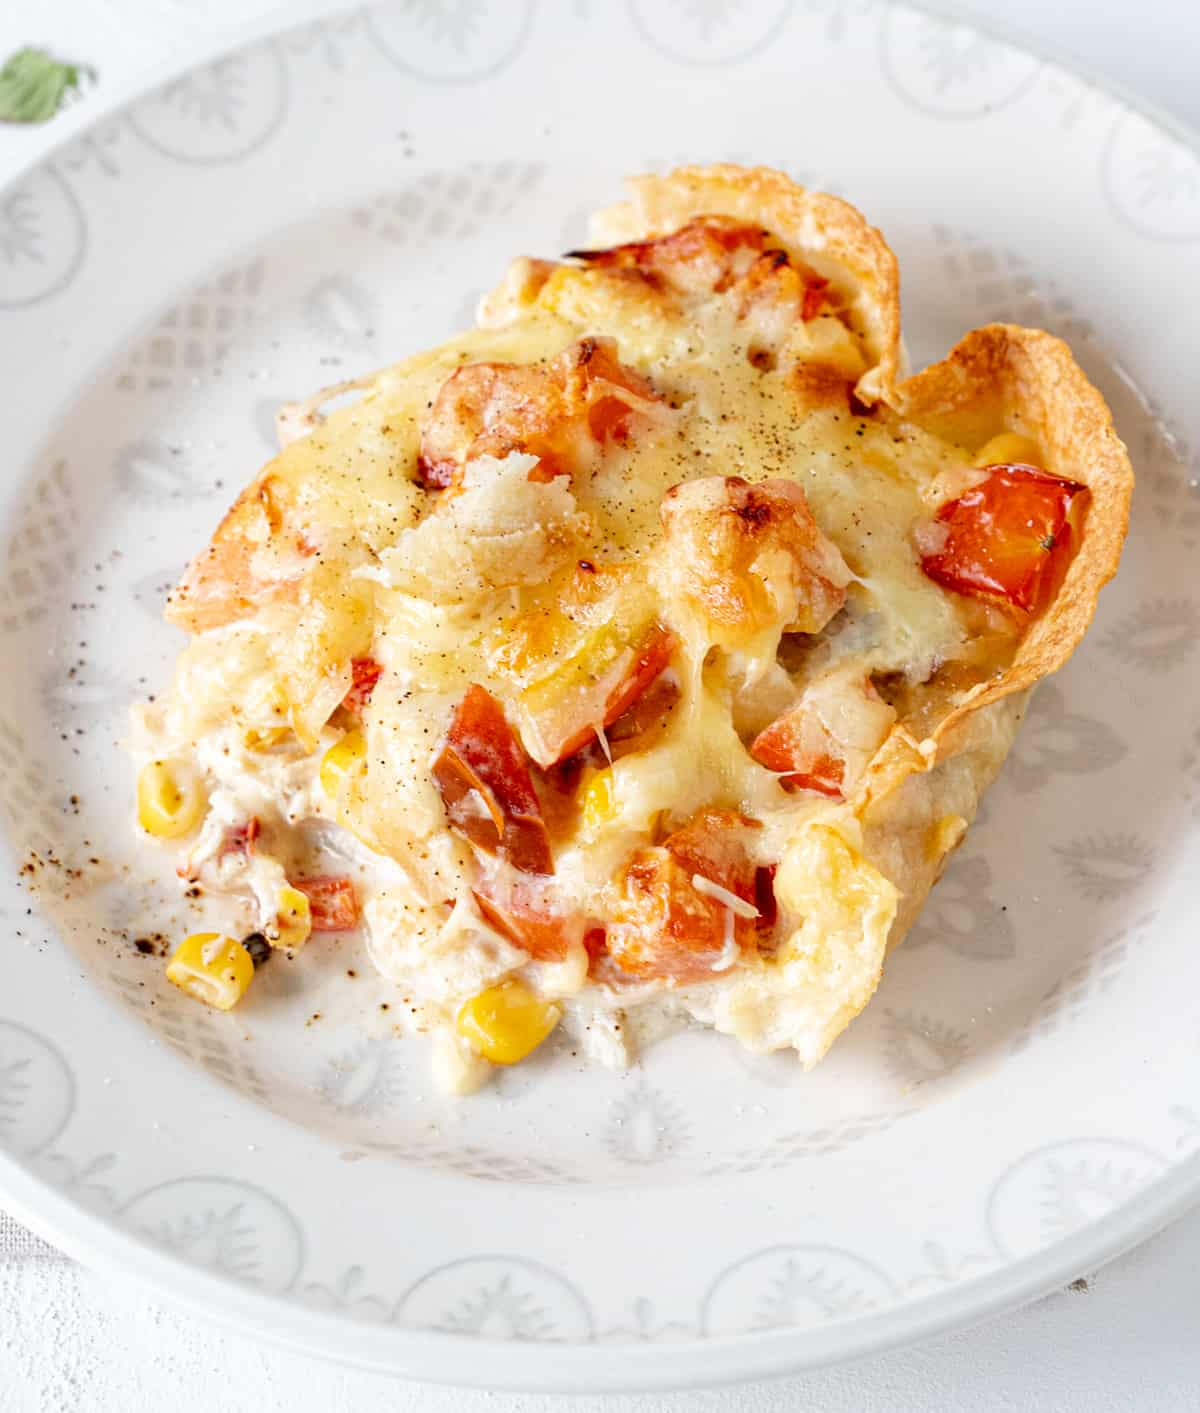 Top view of white plate with serving of chicken casserole with cheese, corn, and tomatoes.